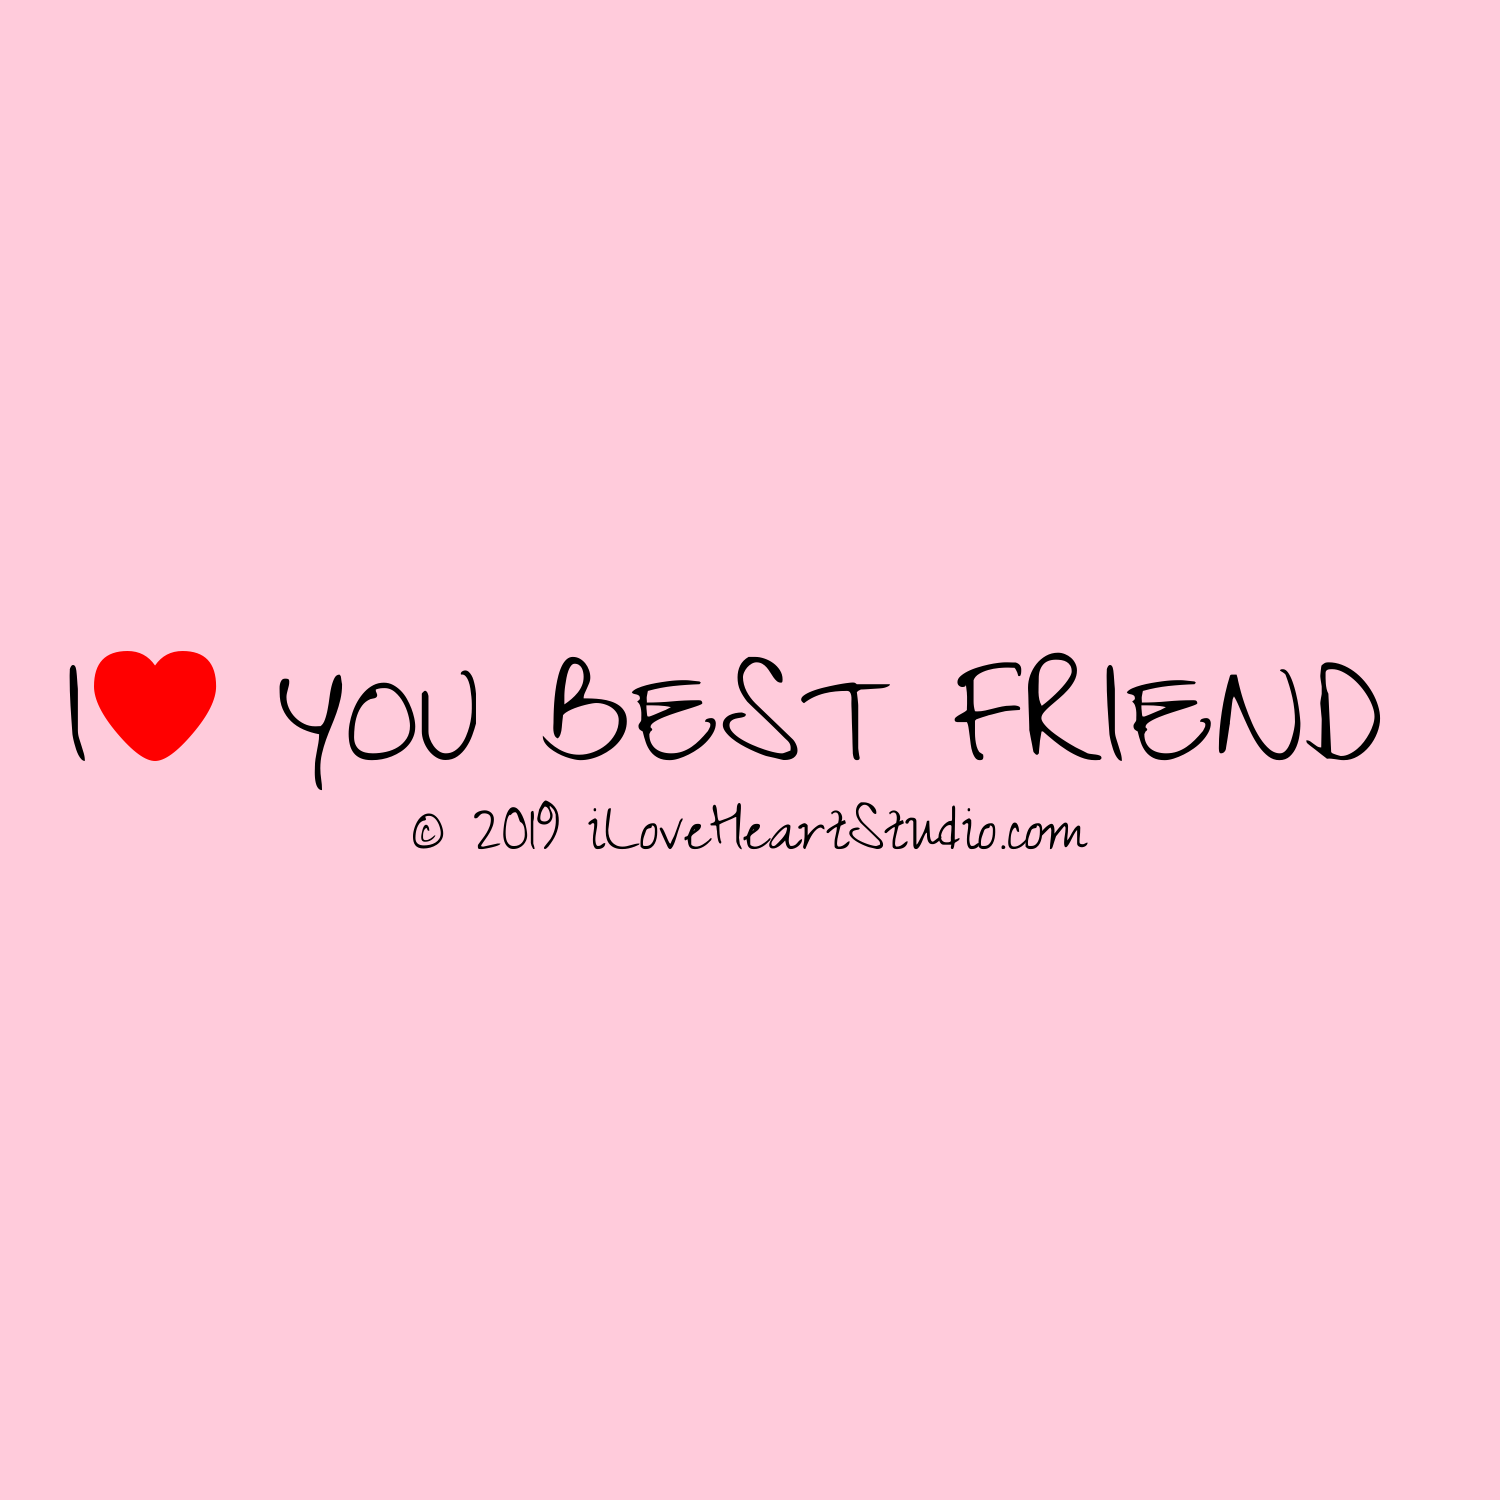 I Love You Bestfriend Quotes Best Friend Quote I Love You Gallery For Gt I Love You Best